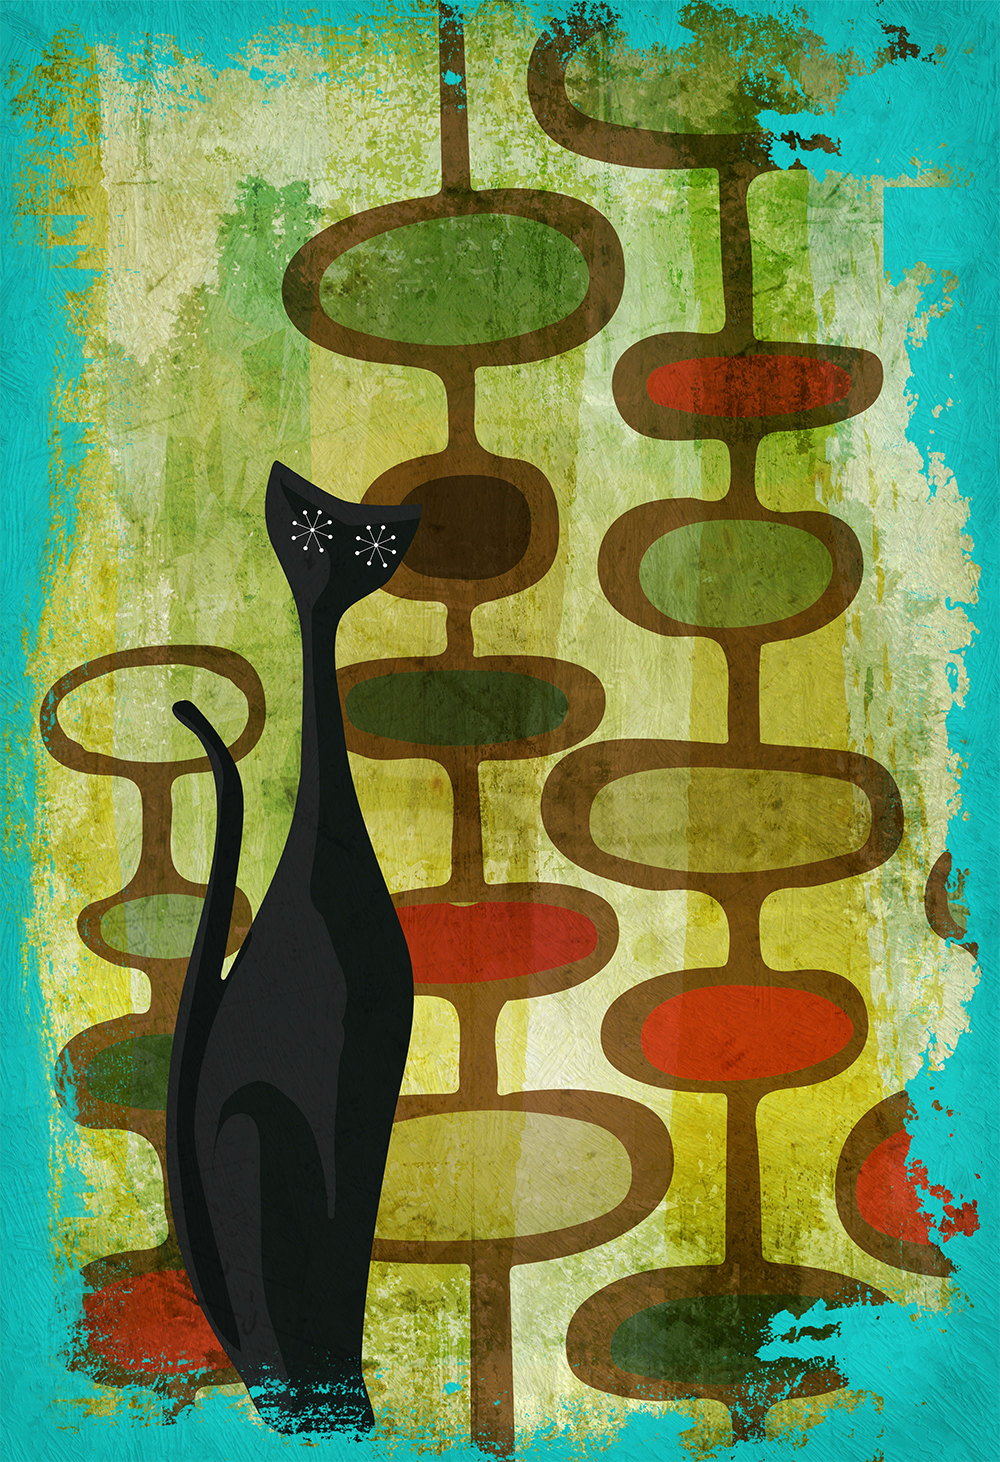 mid century modern print cats abstract art print poster giclee on cotton canvas and paper canvas. Black Bedroom Furniture Sets. Home Design Ideas